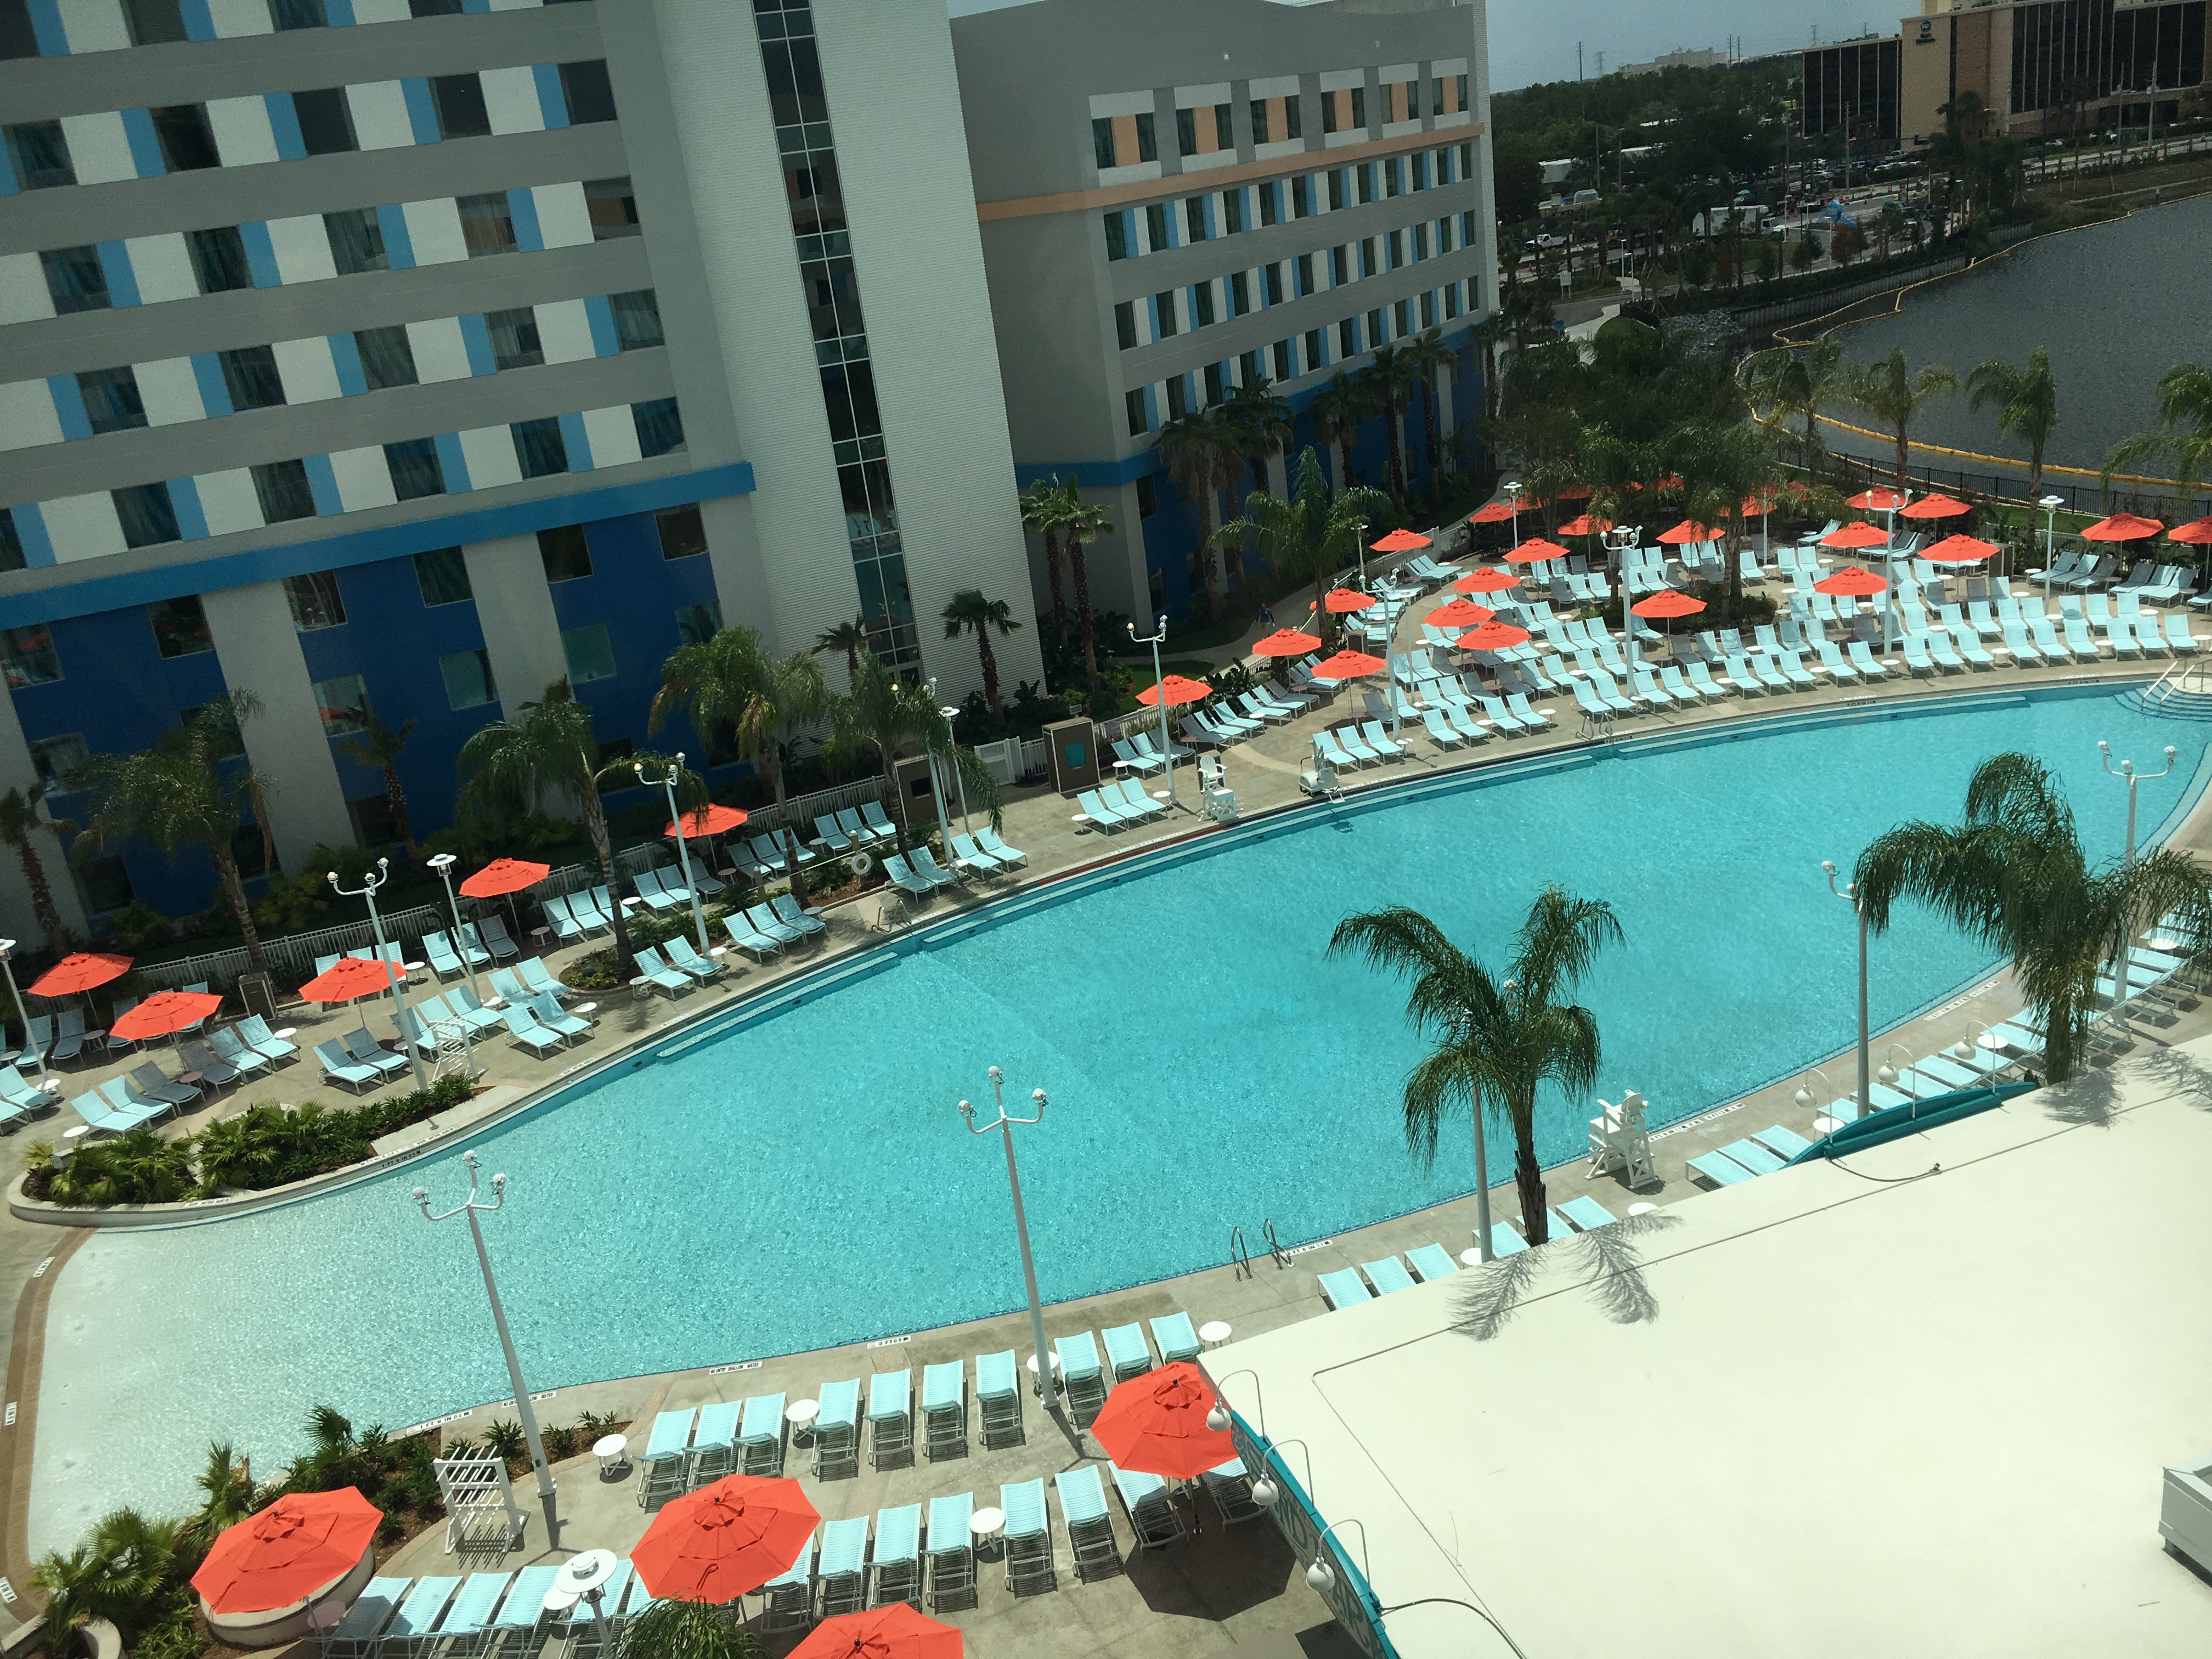 The pool at Surfside Inn & Suites is designed to look like a surfboard and is surrounded by 650 lounge chairs.